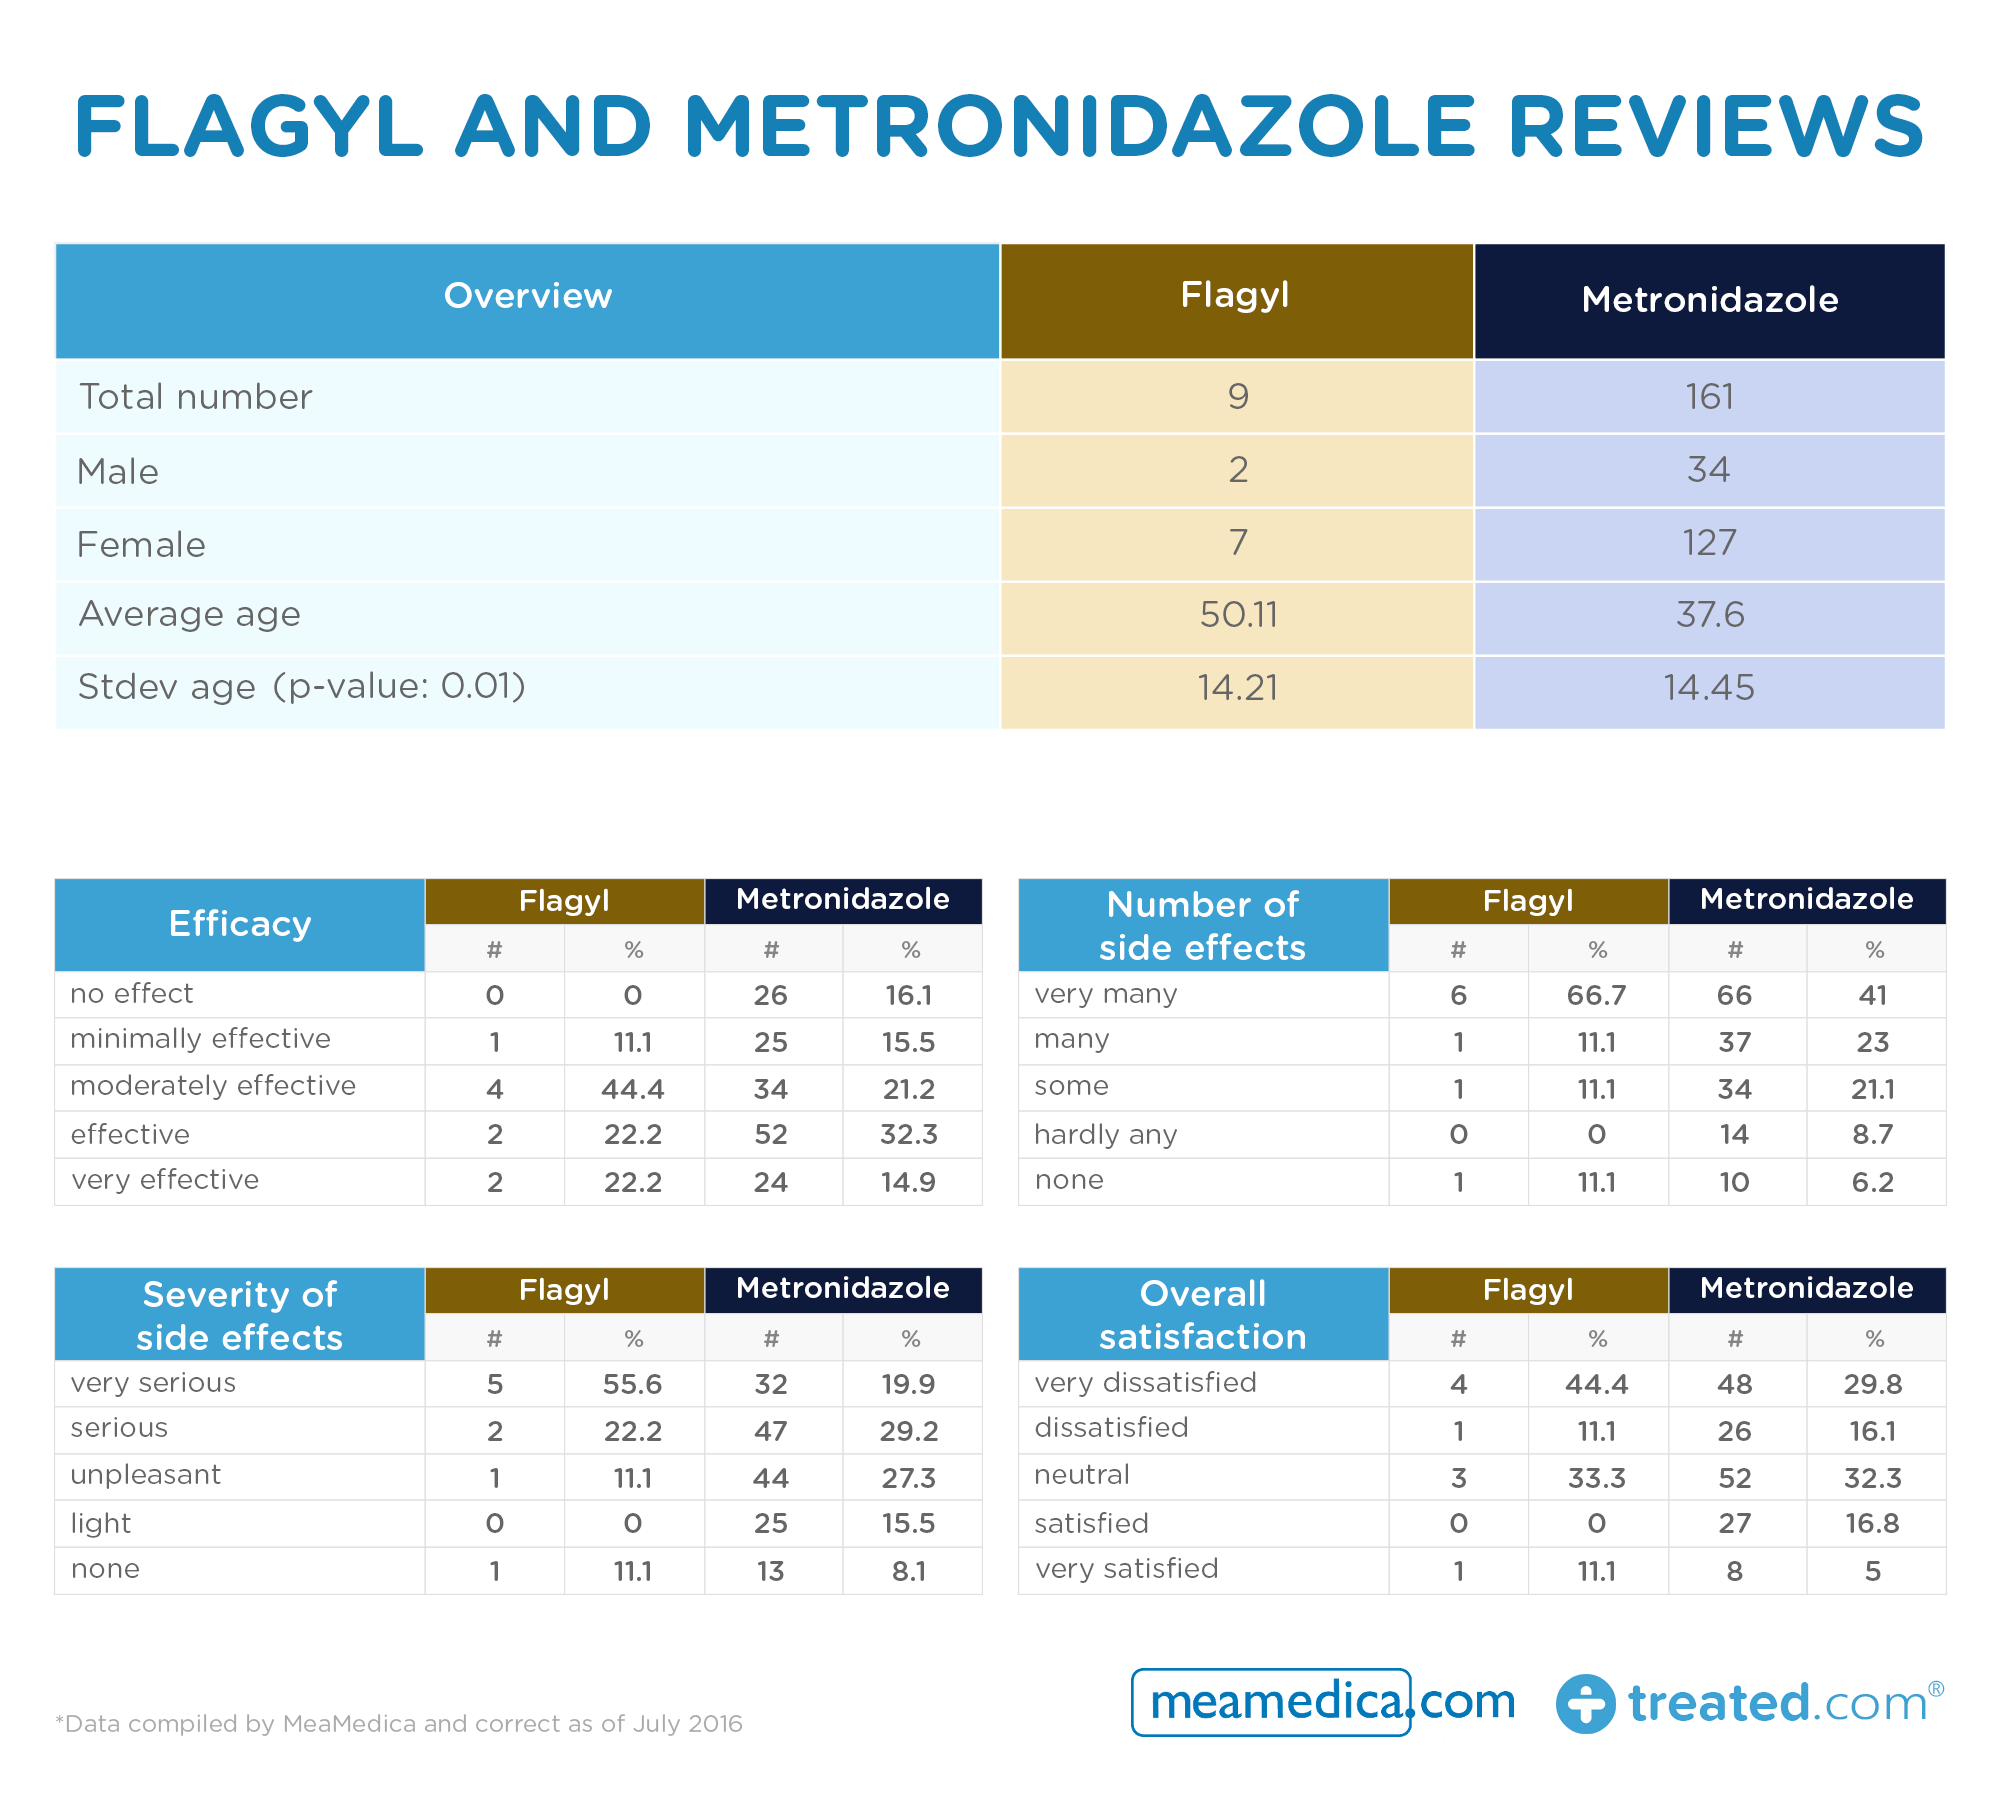 Flagyl and Metronidazole reviews table